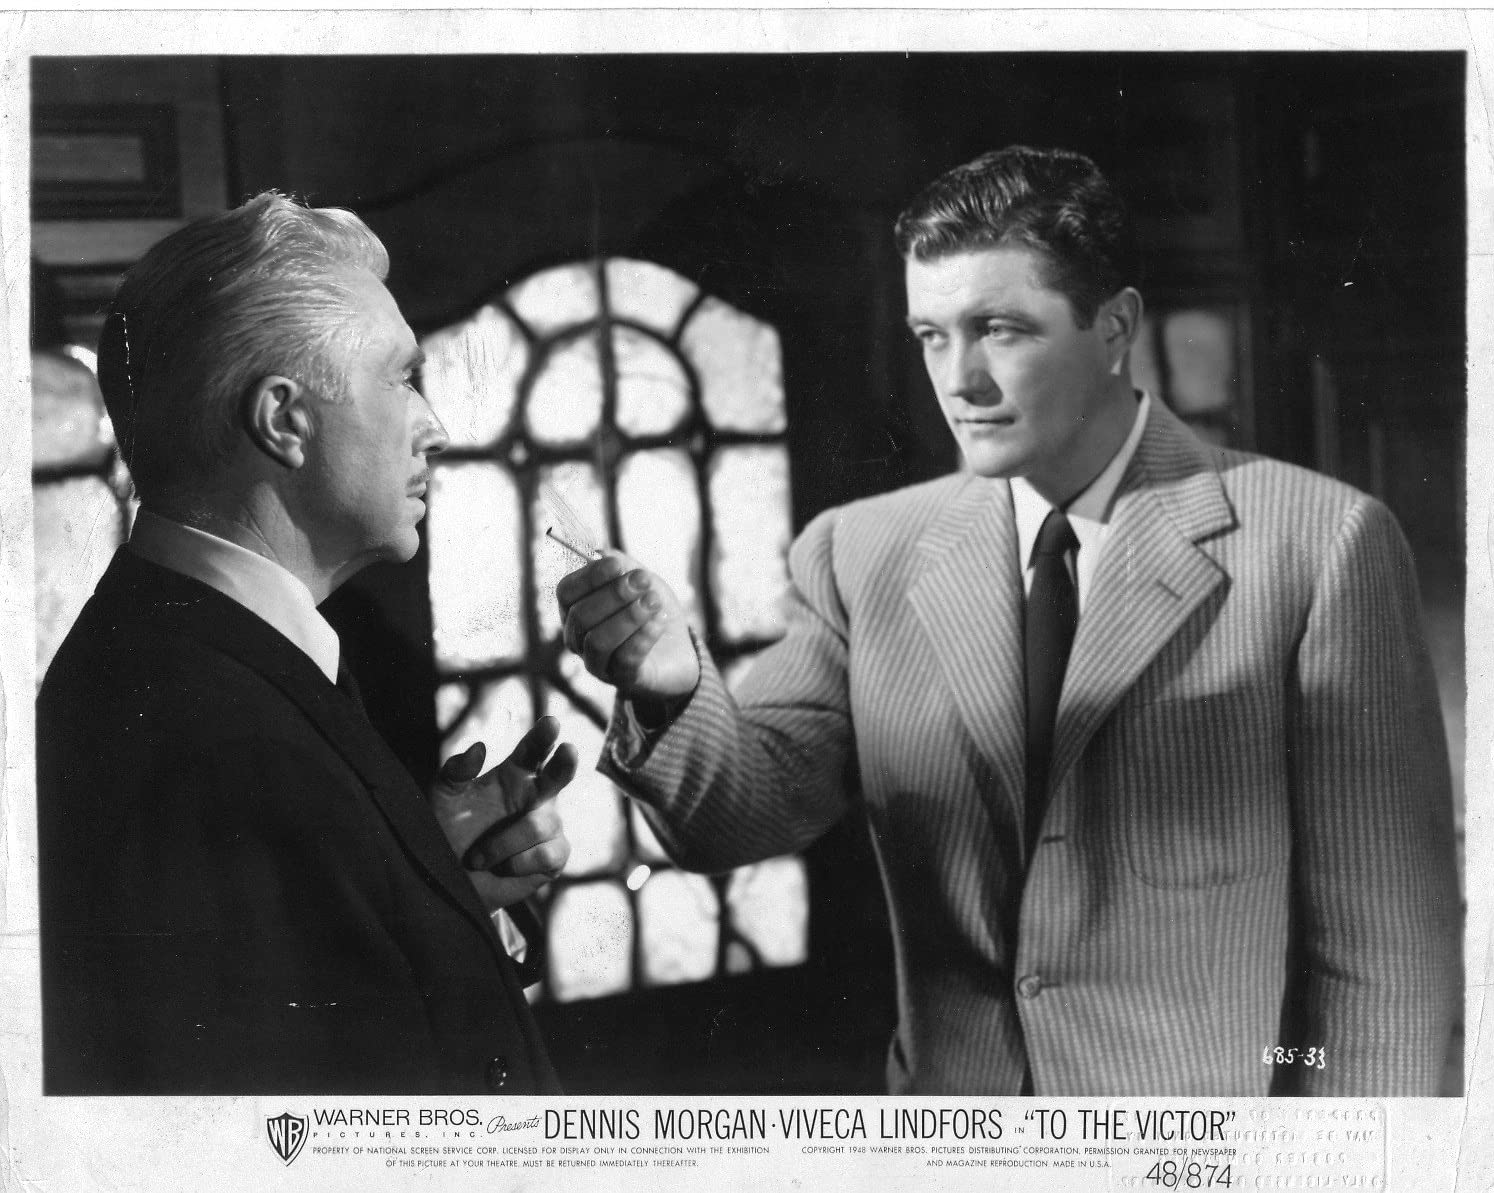 Dennis Morgan To The Victor Original 8x10 Glossy Photo F6326 At Amazon S Entertainment Collectibles Store